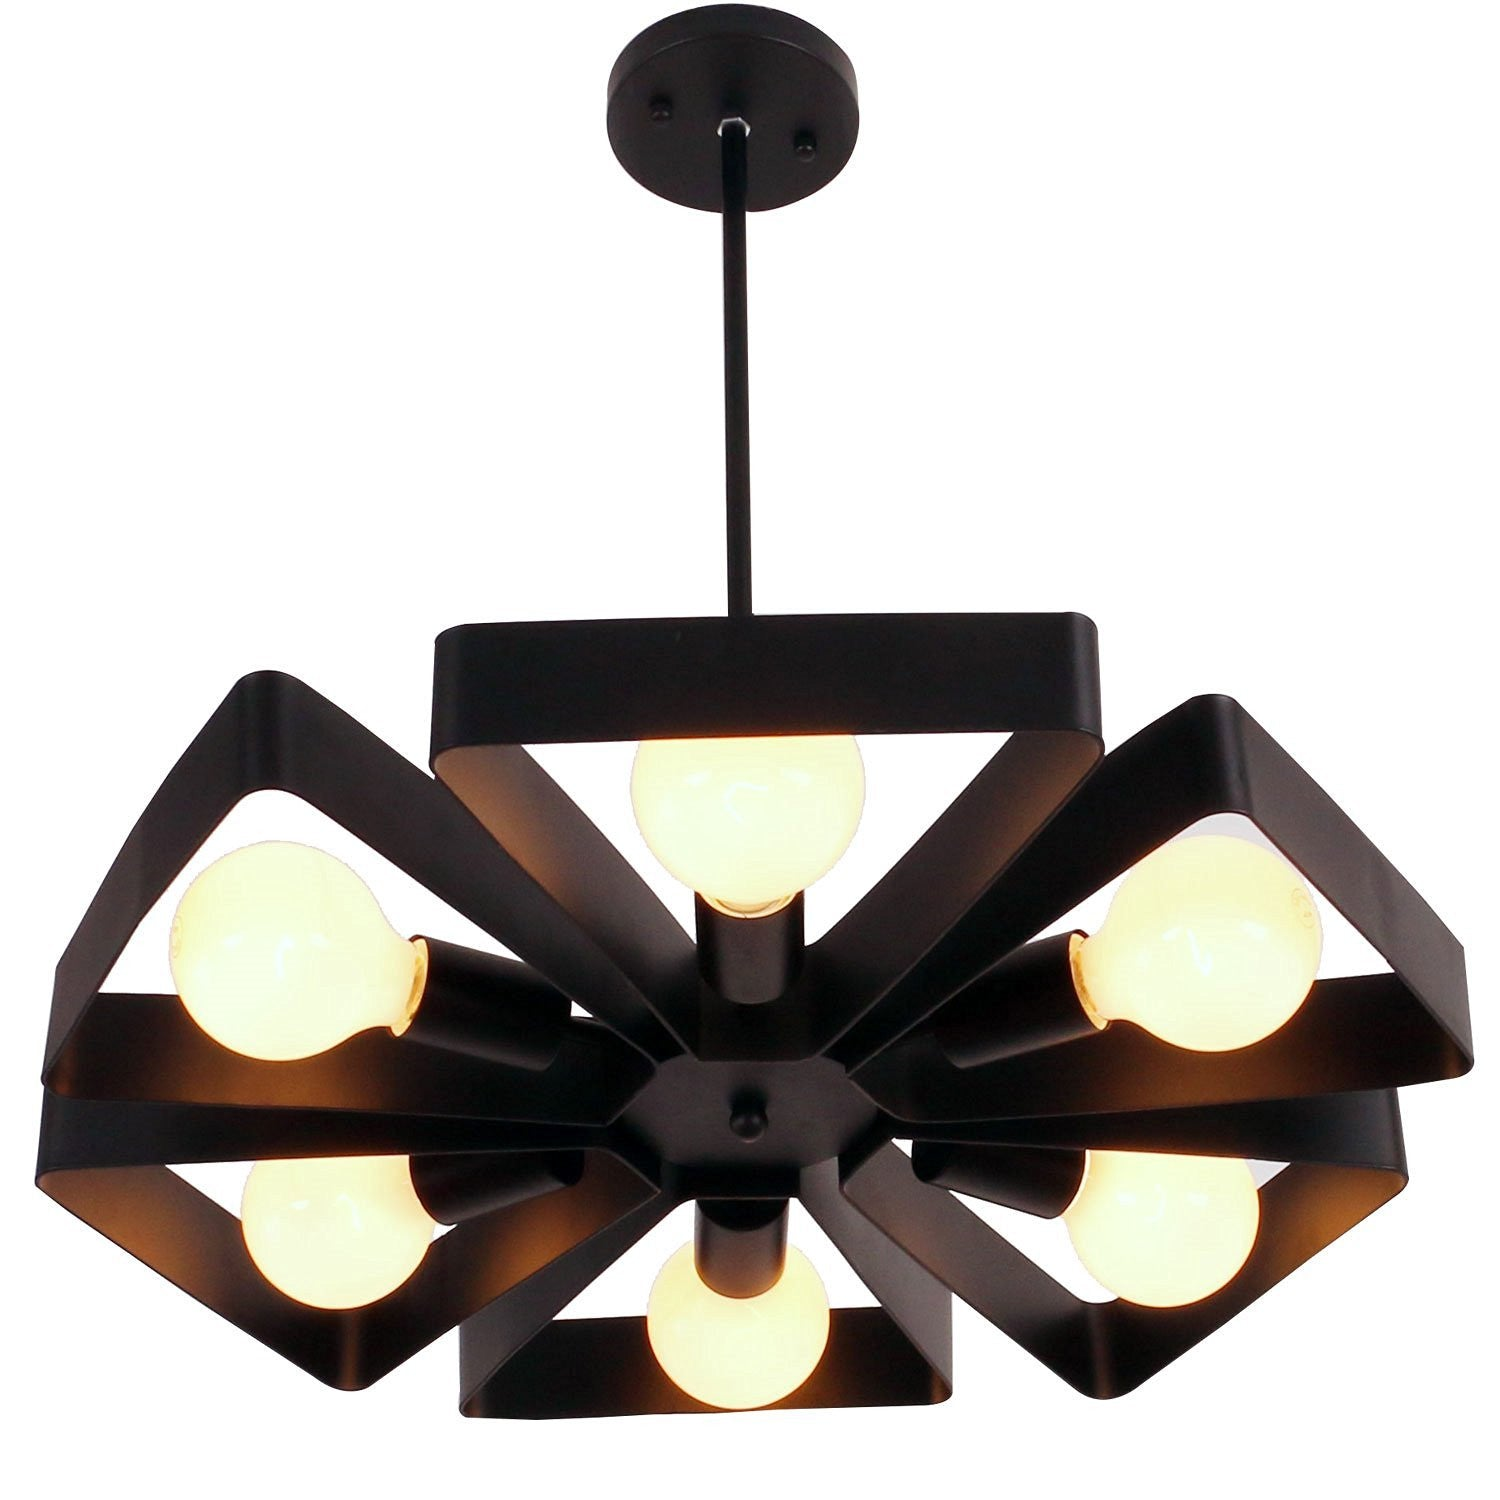 Unitary Brand Black Vintage Barn Metal Floral Pendant Light with 6 E26 Bulb Sockets 360W Painted Finish